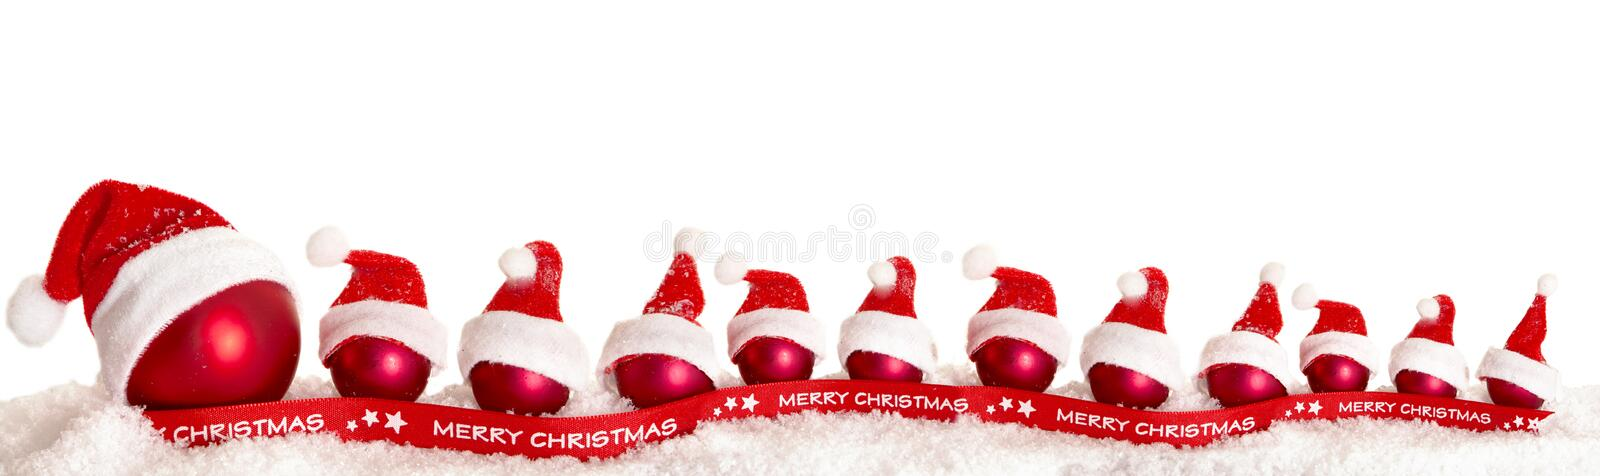 Red Christmas tree balls with Christmas caps in the snow royalty free stock photography